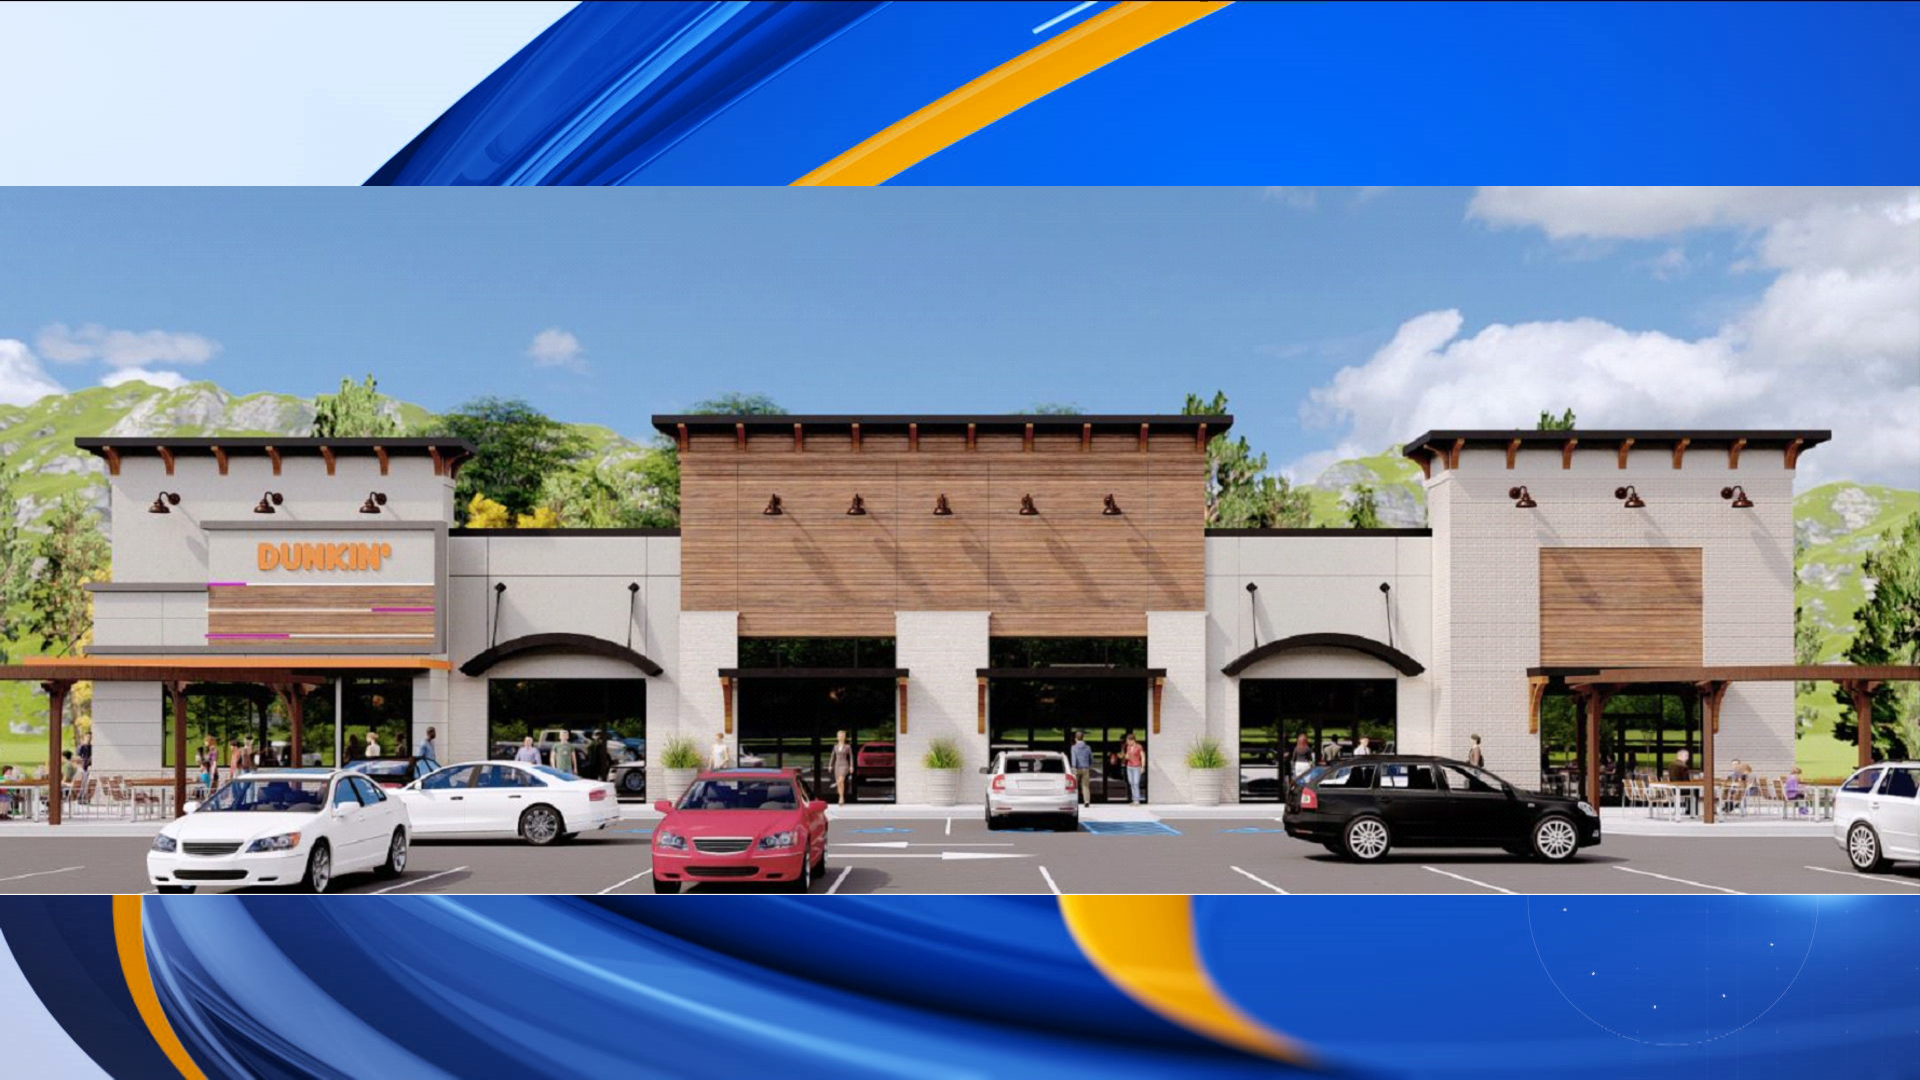 In addition to the Dunkin', the 10,000 square-foot shopping center will also be home to a Champs Cuts hair salon, an Asian Express restaurant, and a national physical therapy practice.